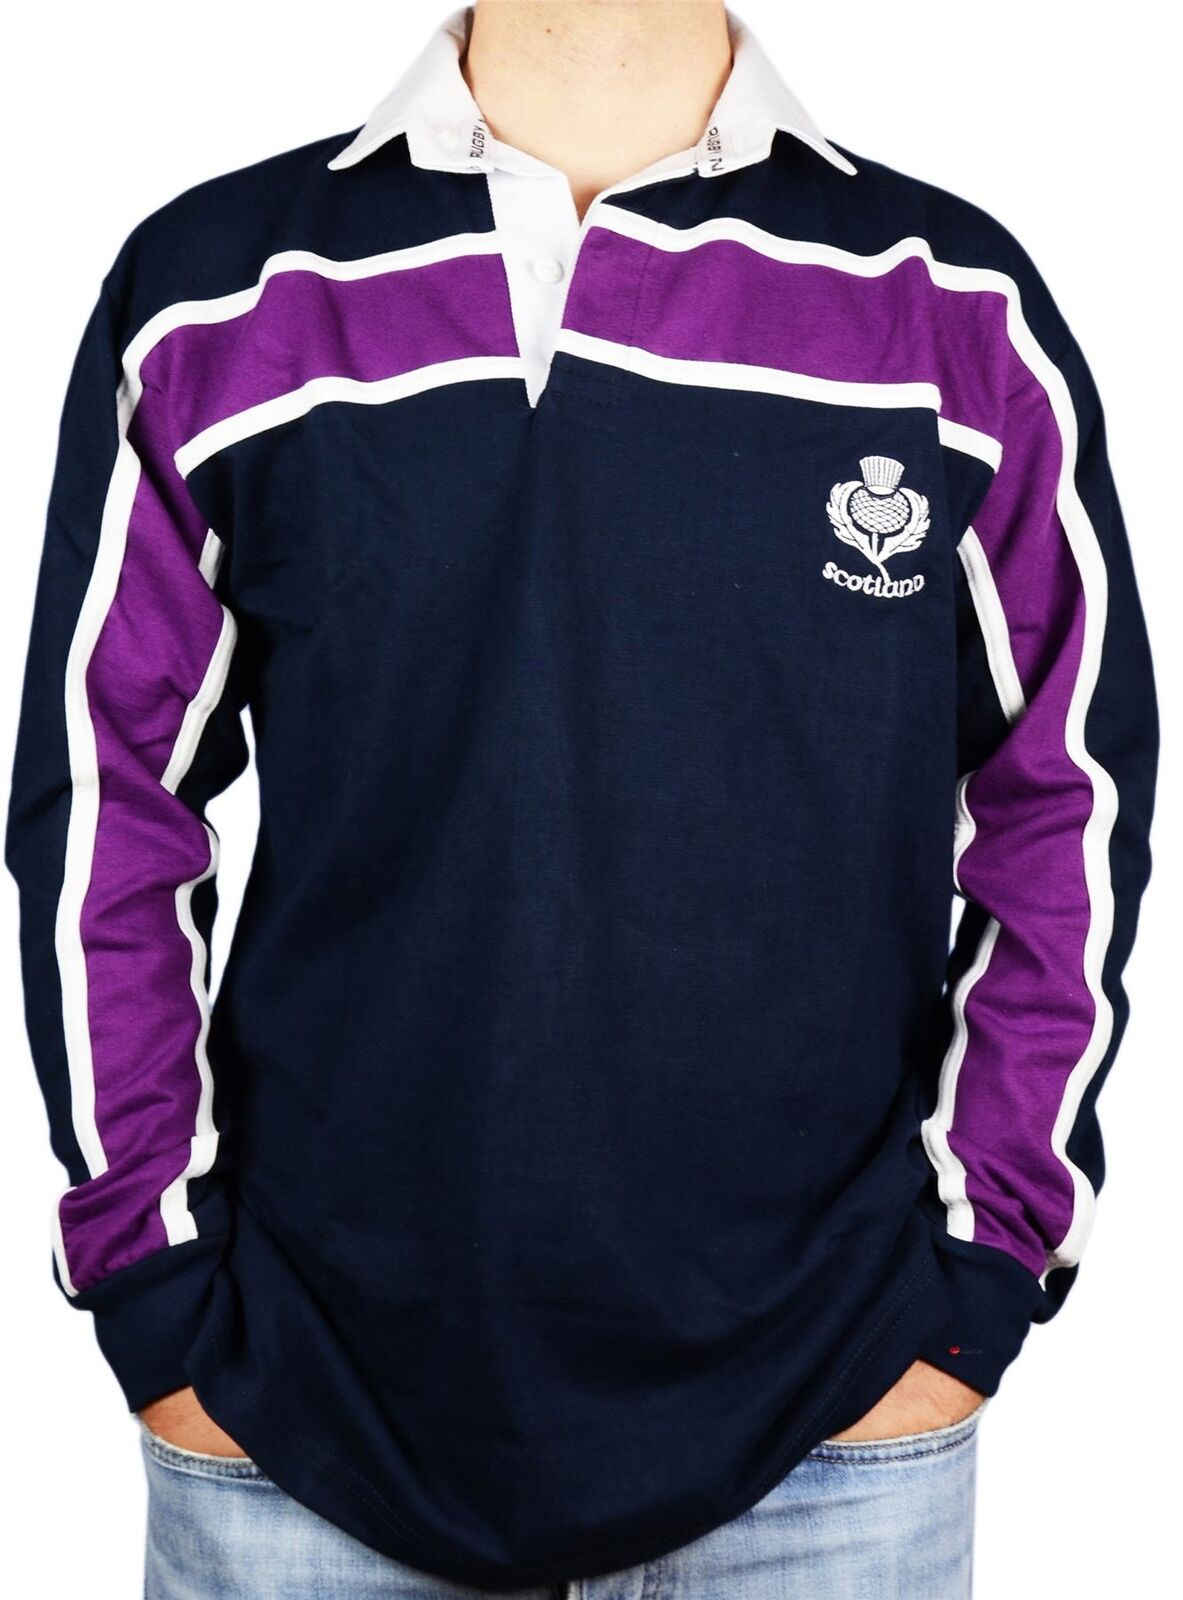 Scottish Gents Rugby Shirt lila Stripe Long Sleeve Navy Größe X-Small    Spezielle Funktion